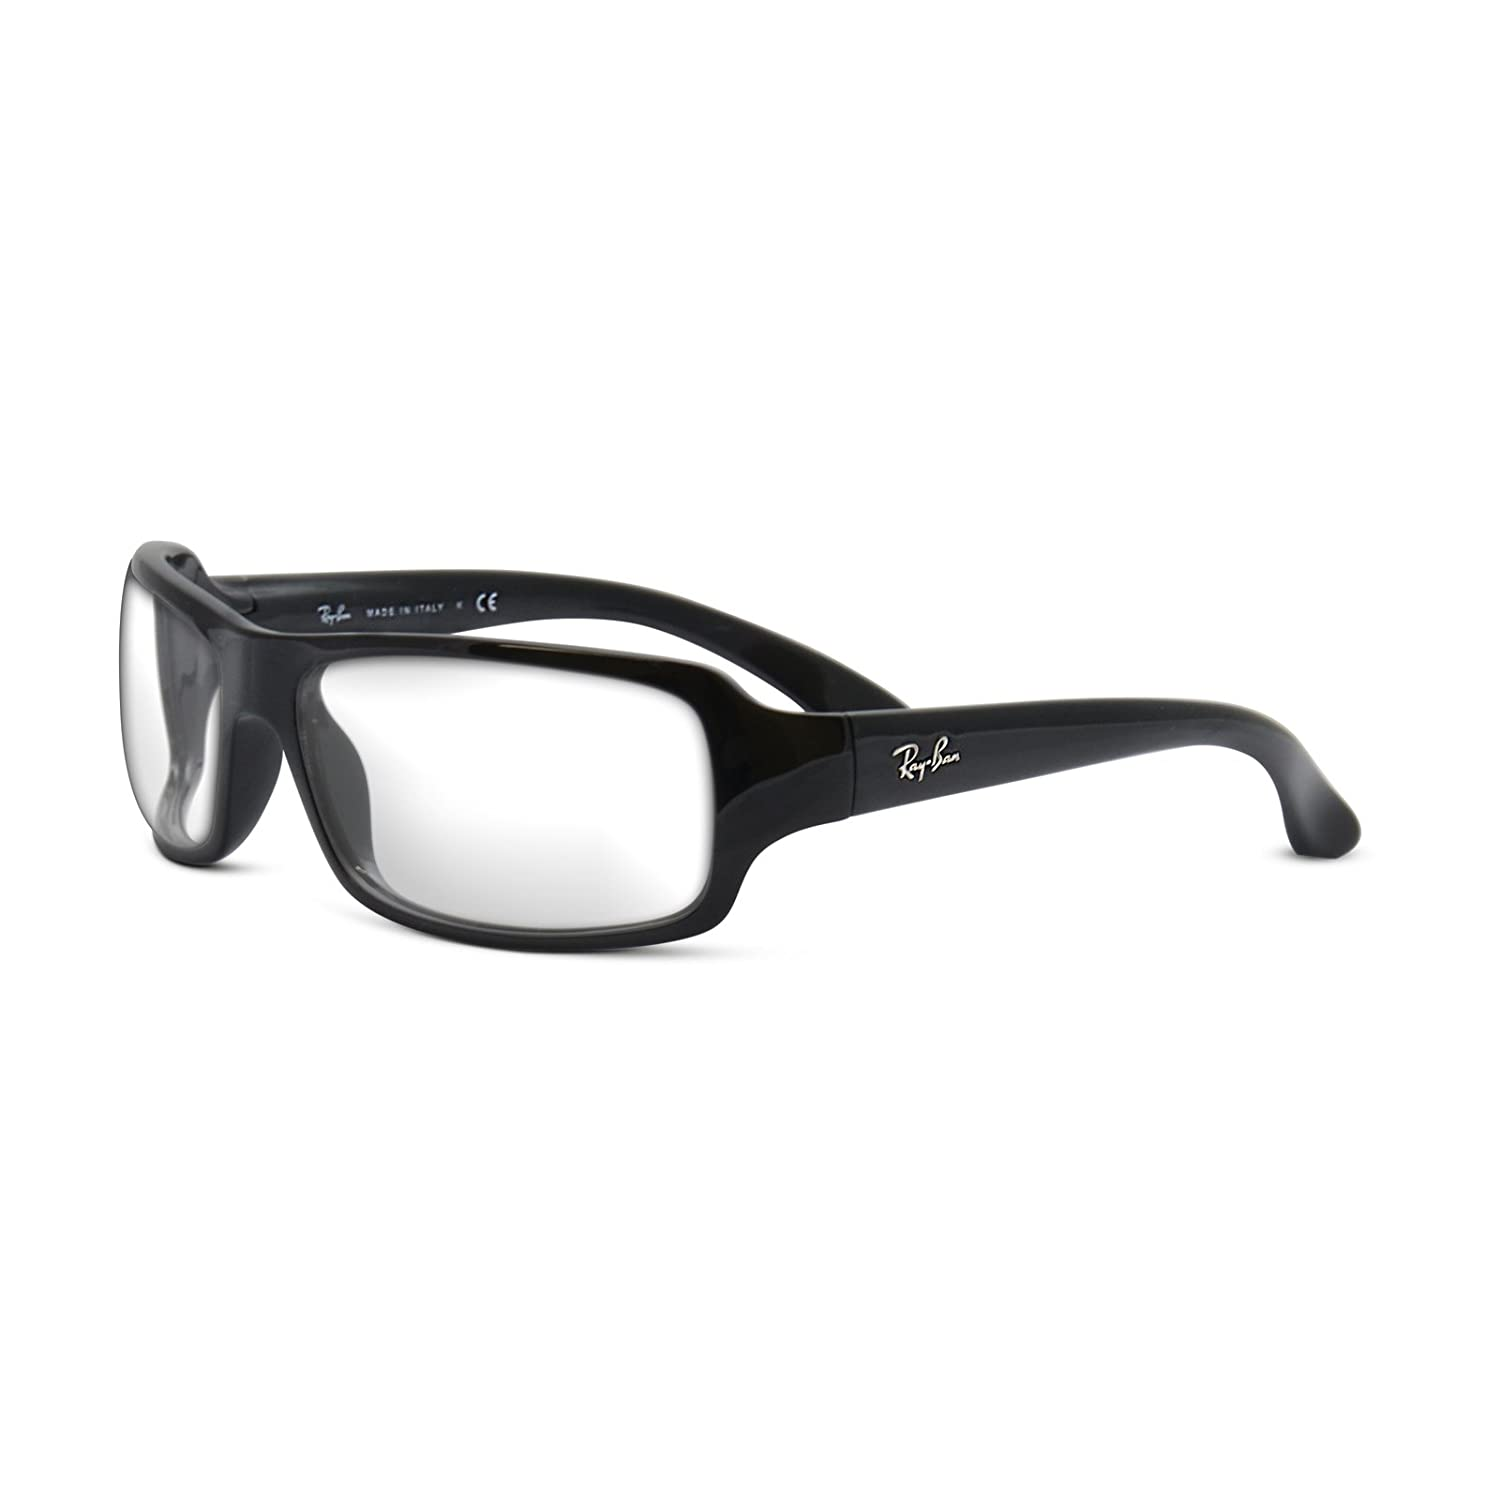 Sublime Optics Replacement Lenses for Ray Ban RB4075 RB4075-CNON